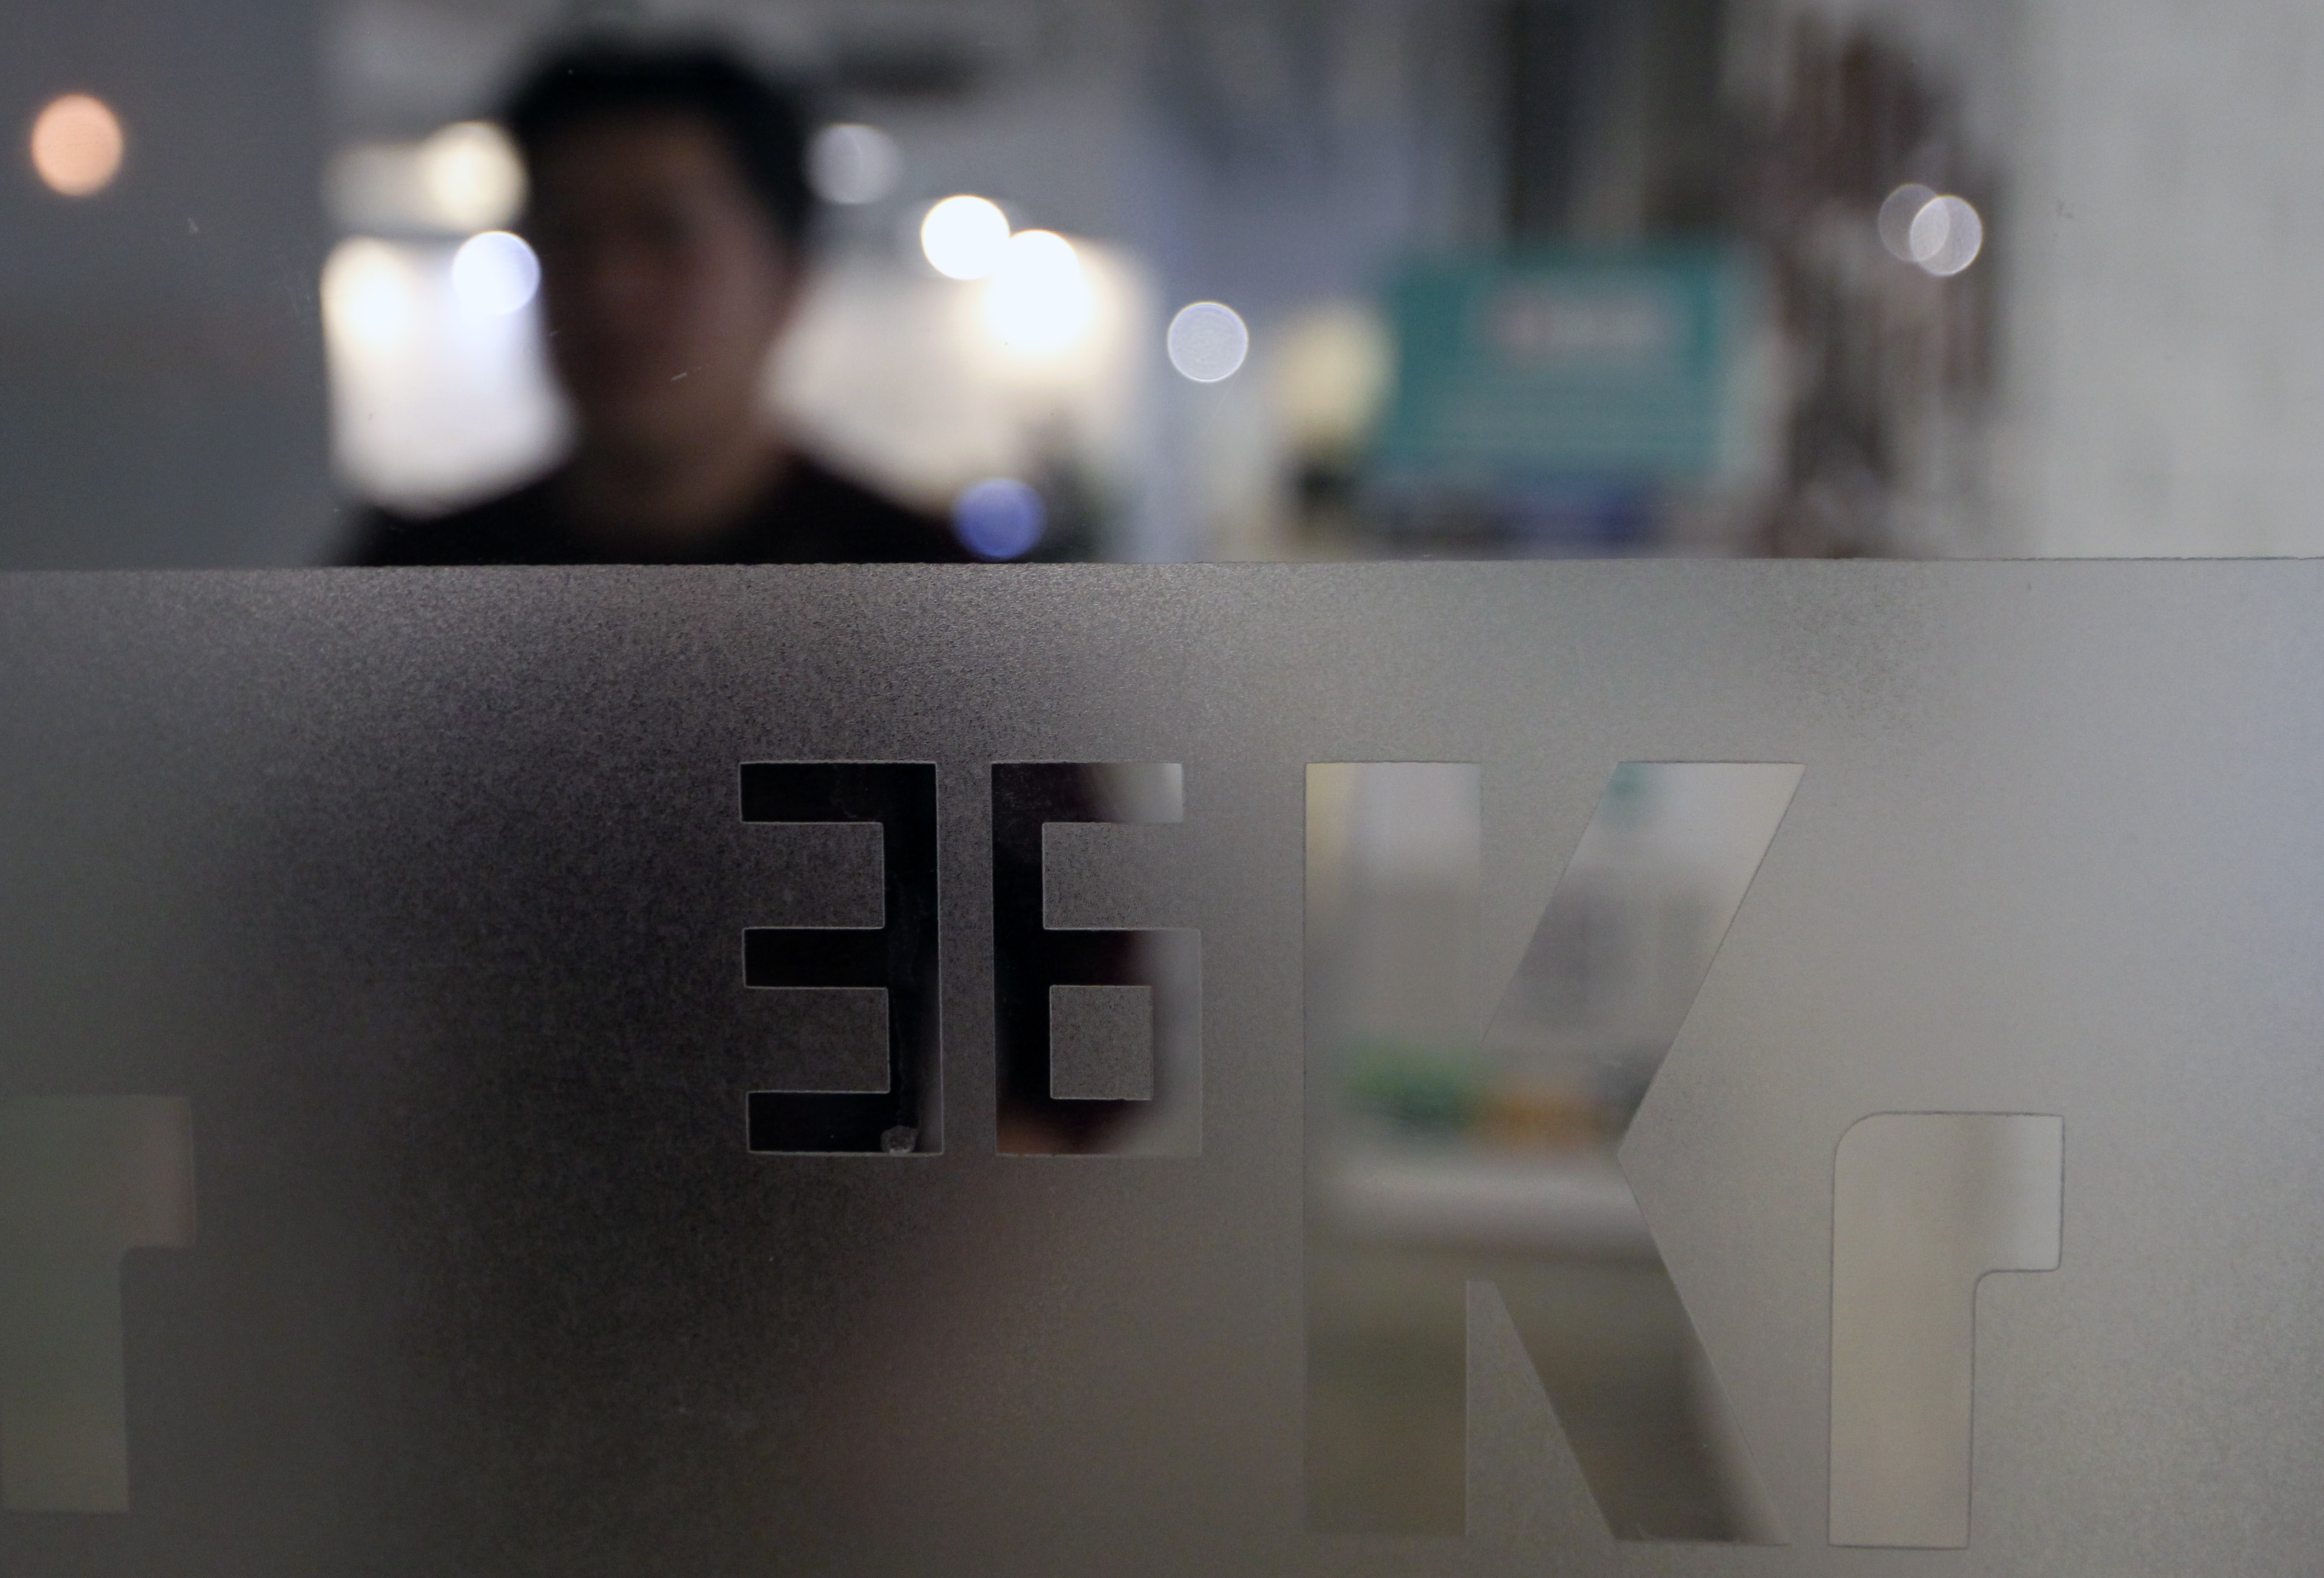 Chinas news and data site 36Kr tumbles in its stock market debut